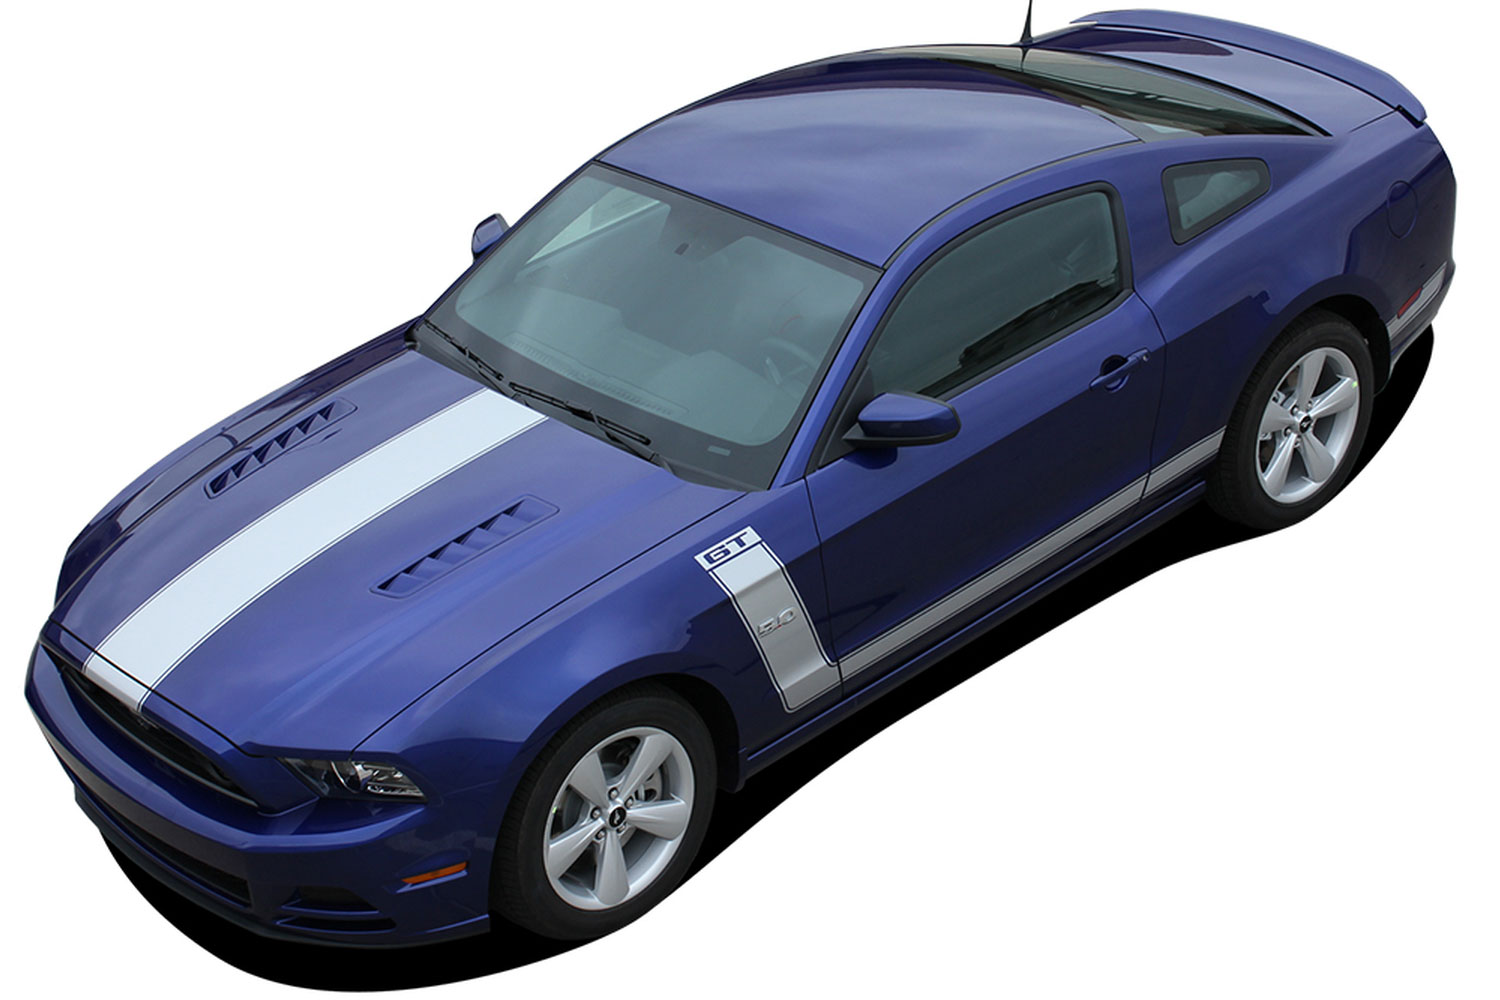 Ford Mustang Boss Stripes Door Decals Prime Agp A on 2000 Dodge Dakota Decal